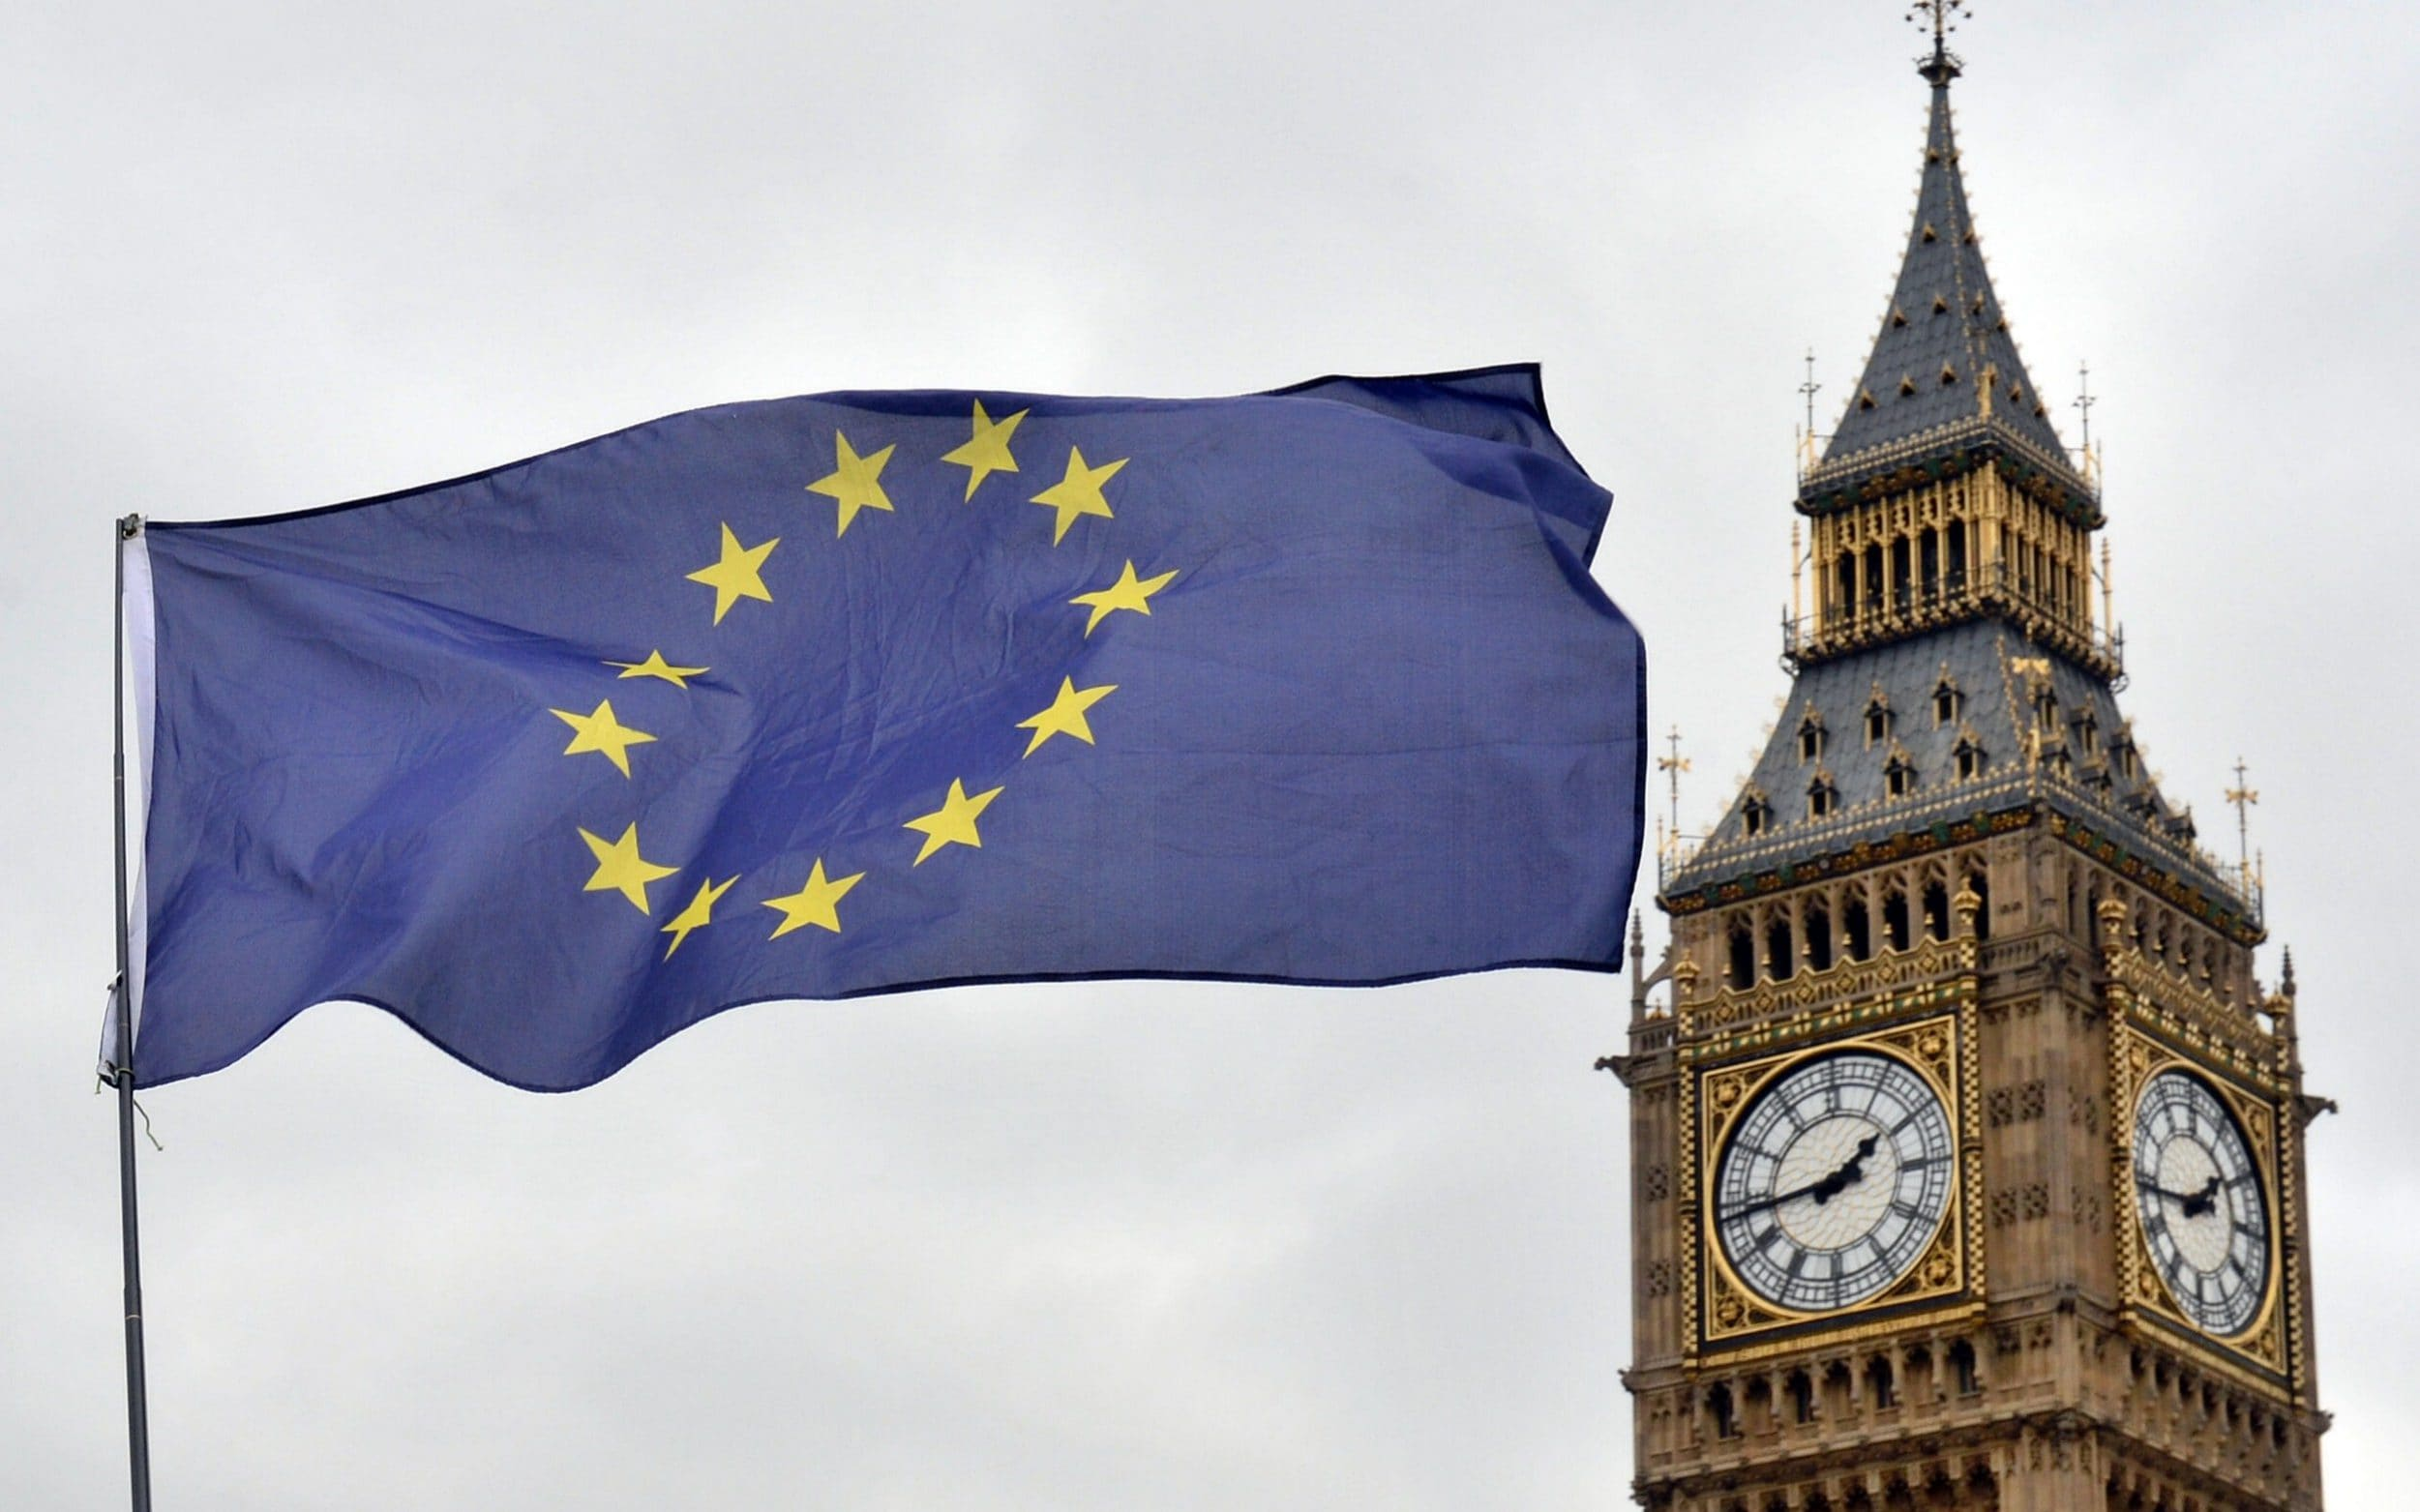 A European Union flag in front of the Elizabeth Tower